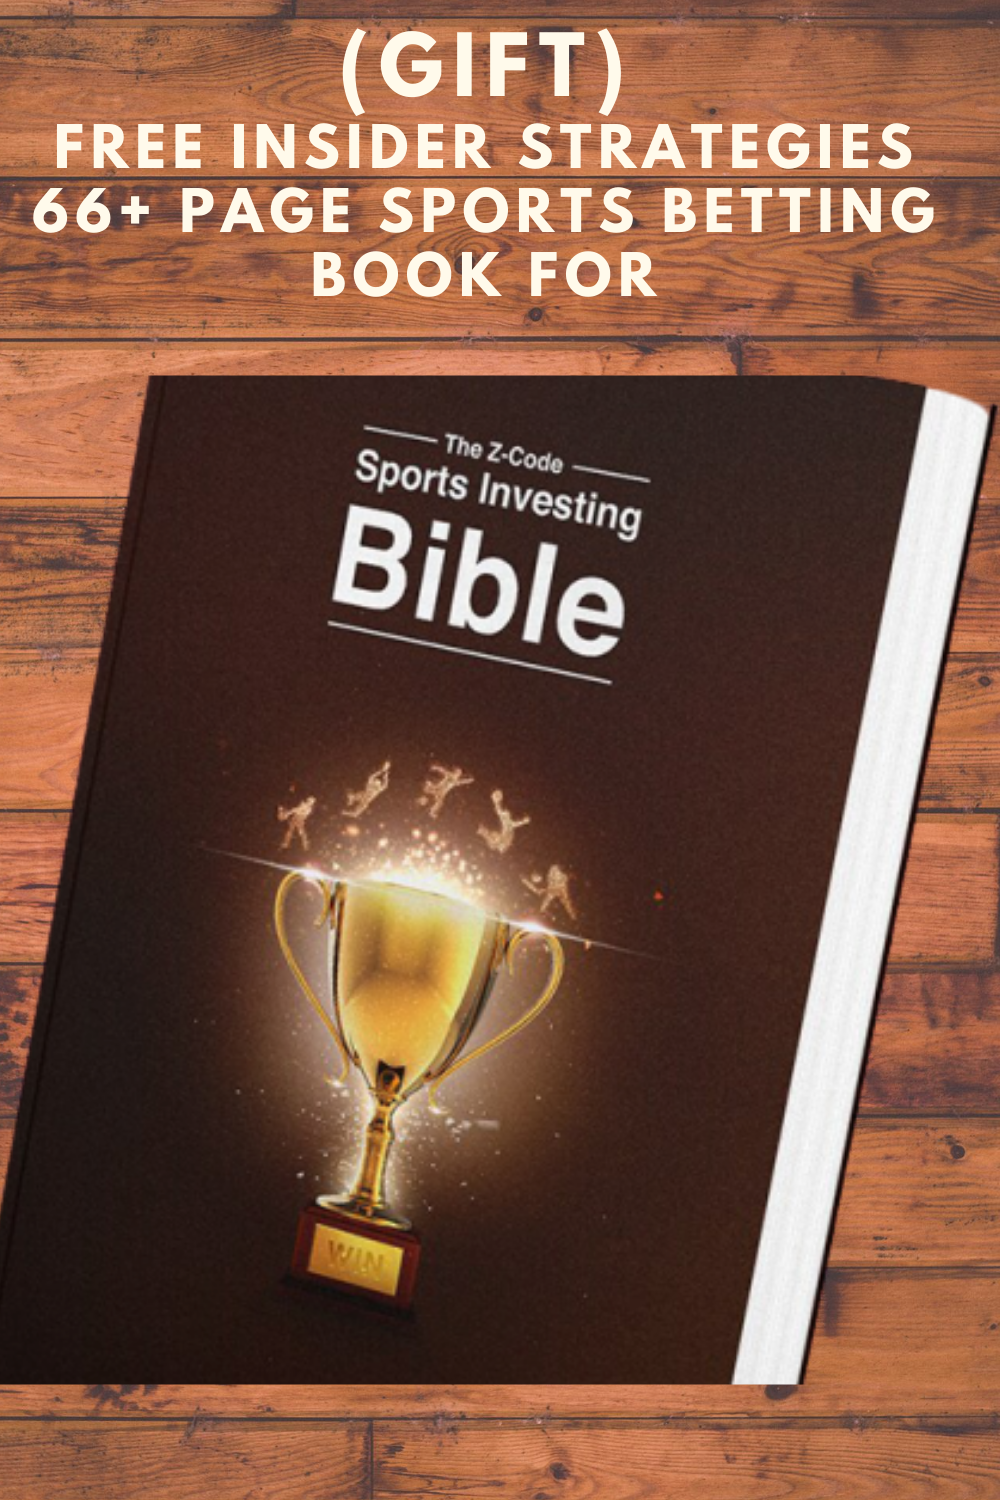 Sports betting systems books of the bible in order graves at sea betting on black